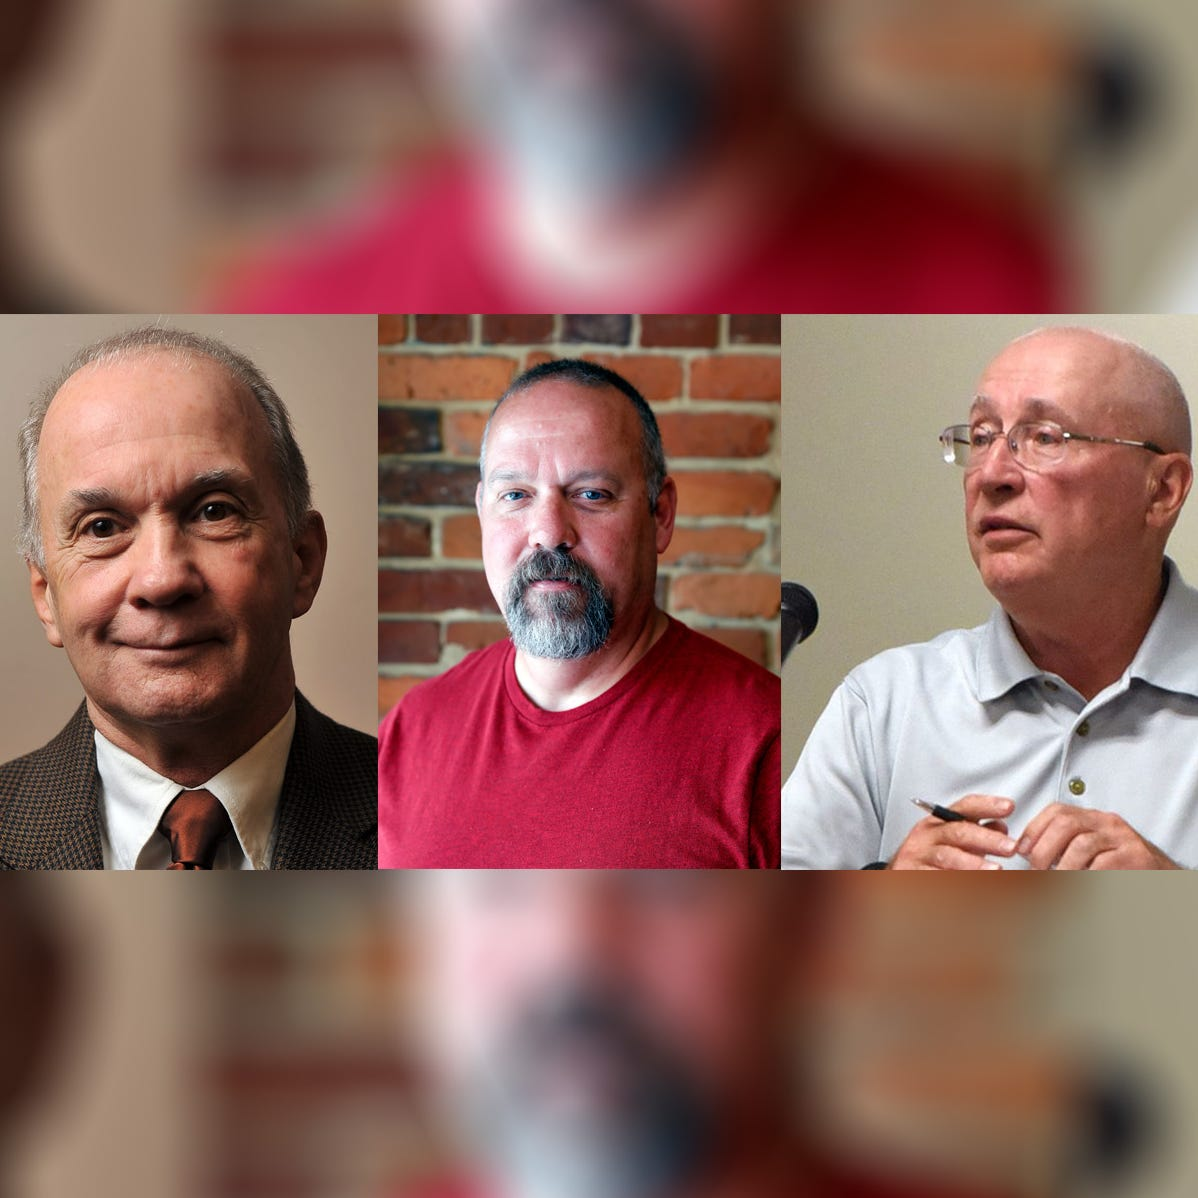 Lancaster City Council will see new faces this year